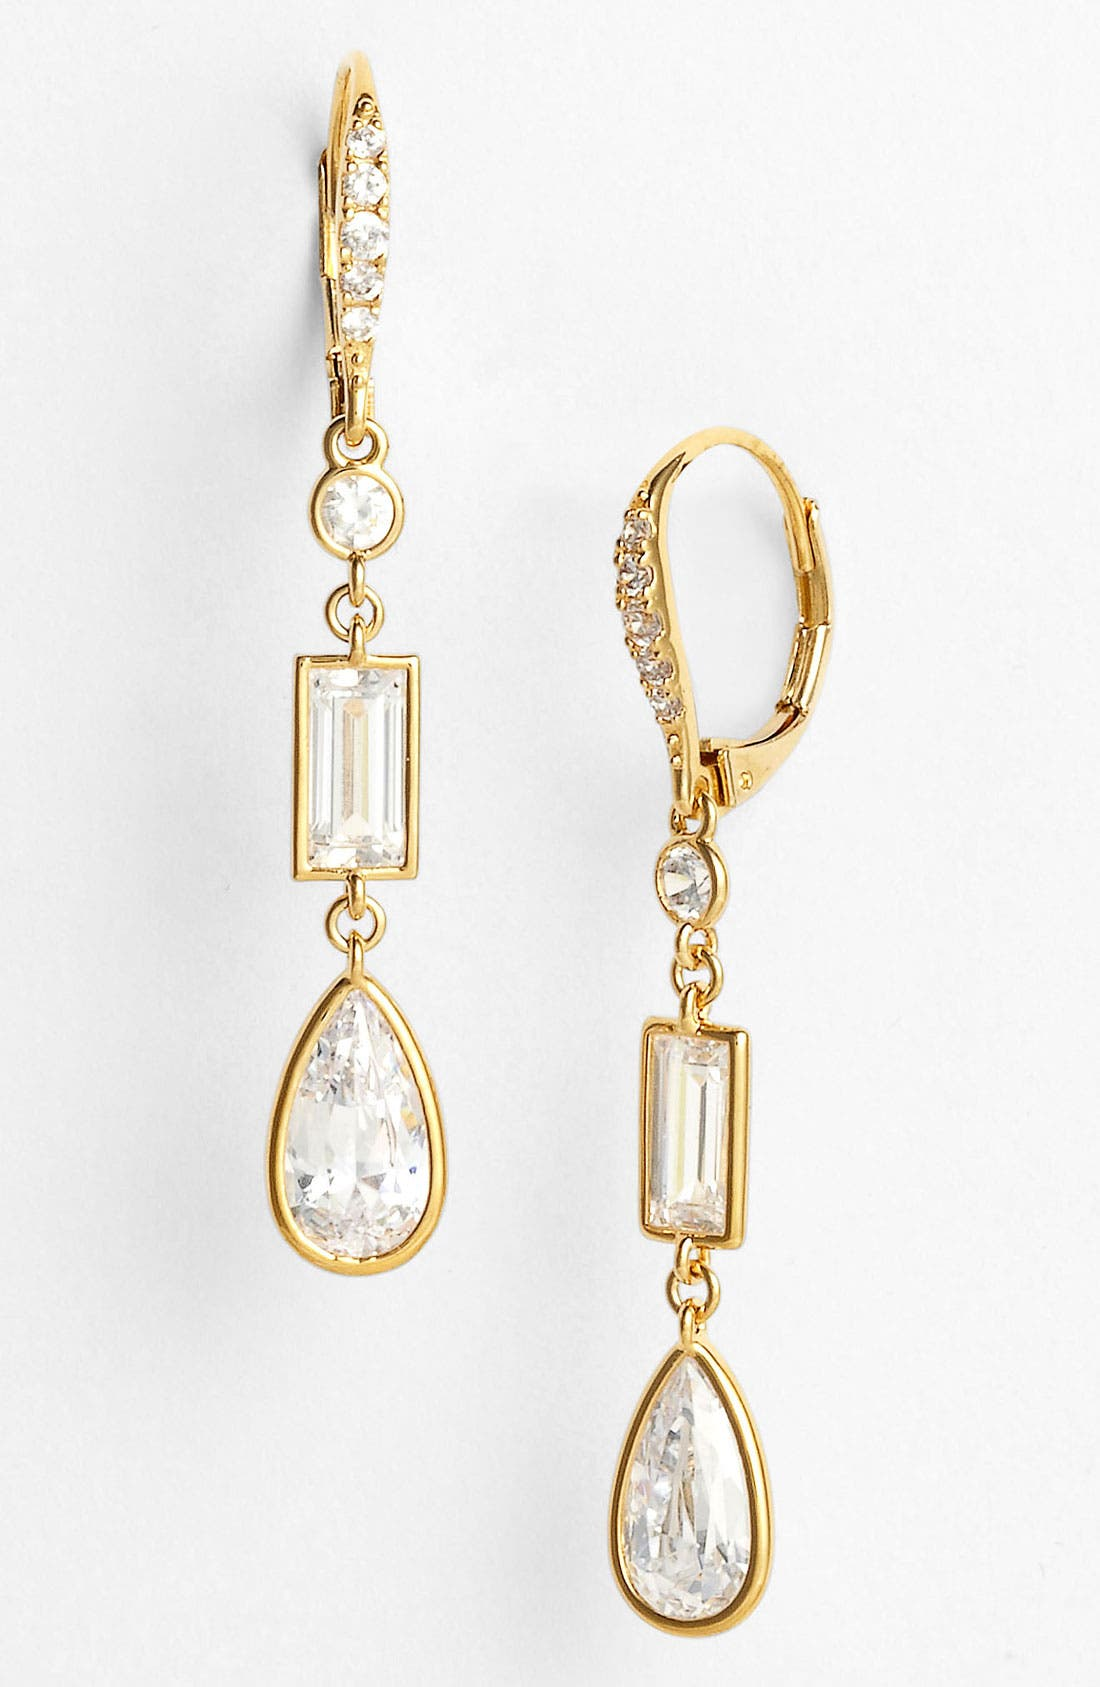 Main Image - Nadri Mixed Cut Cubic Zirconia Earrings (Nordstrom Exclusive)